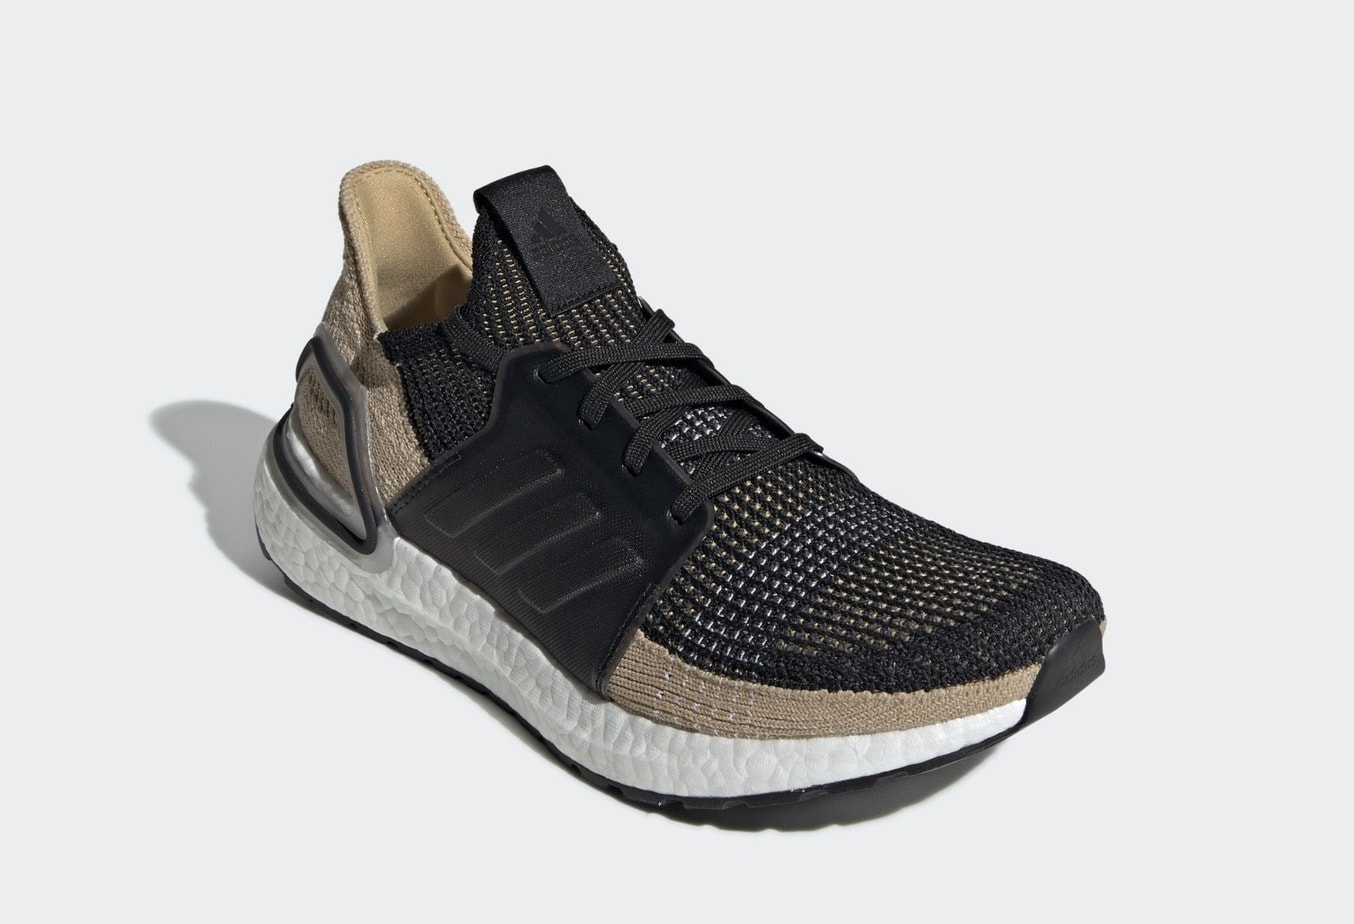 reputable site 064f3 3ebf2 adidas Ultra Boost 2019. Release Date February 21st, 2019. Price 180.  Color Clear BrownFootwear WhiteShock Red Style Code F35241